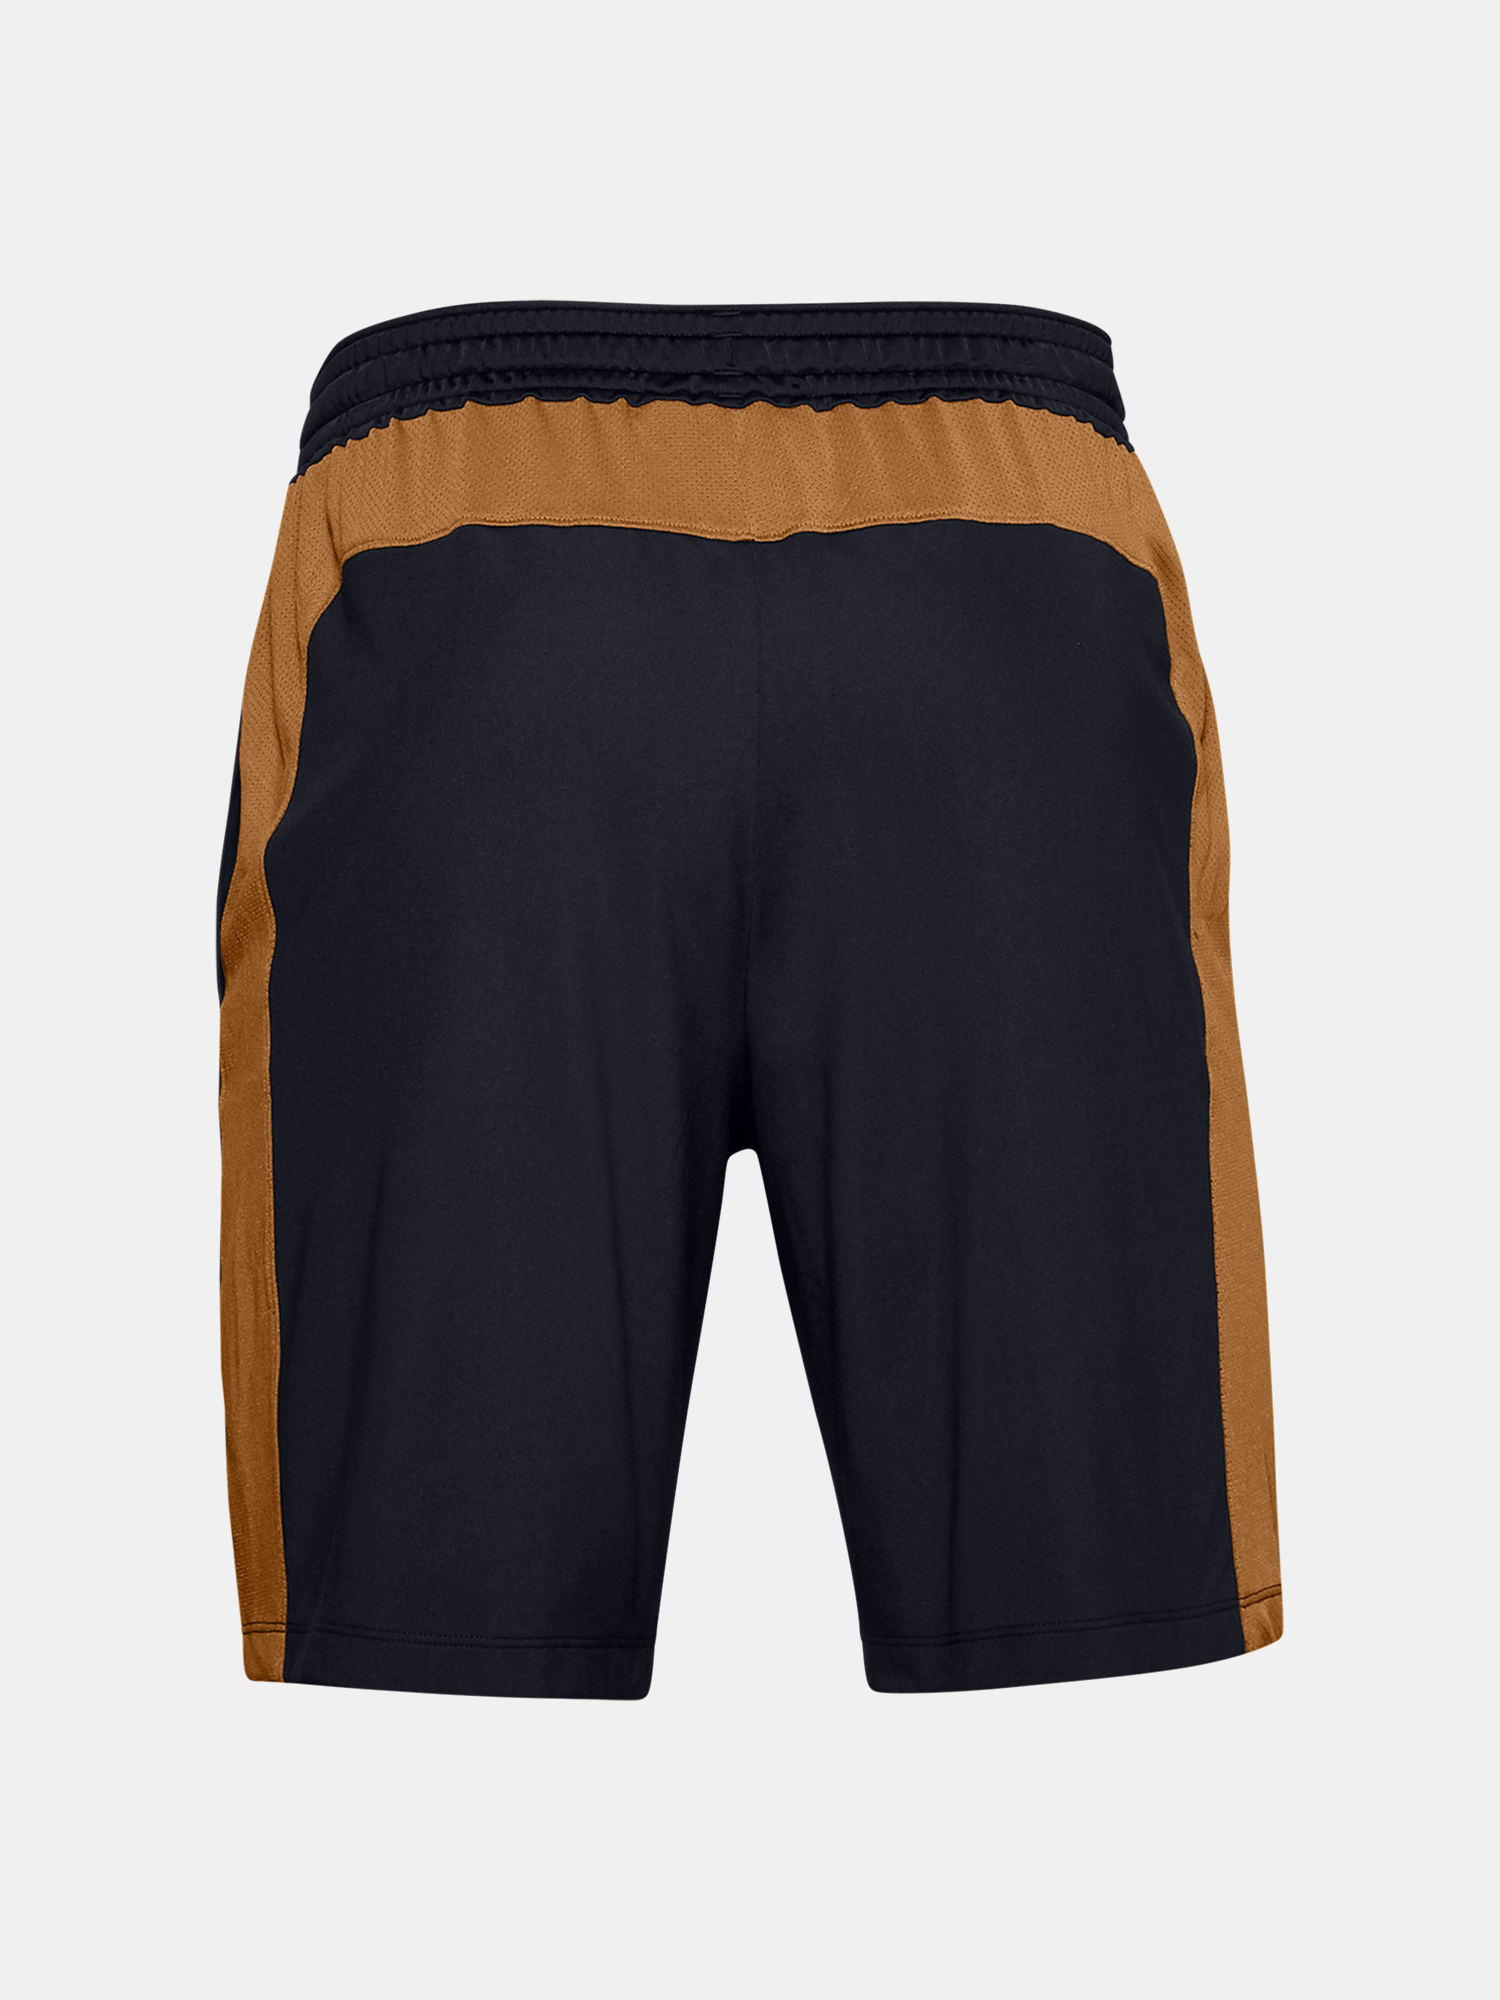 Kraťasy Under Armour MK-1 Shorts-BLK (4)